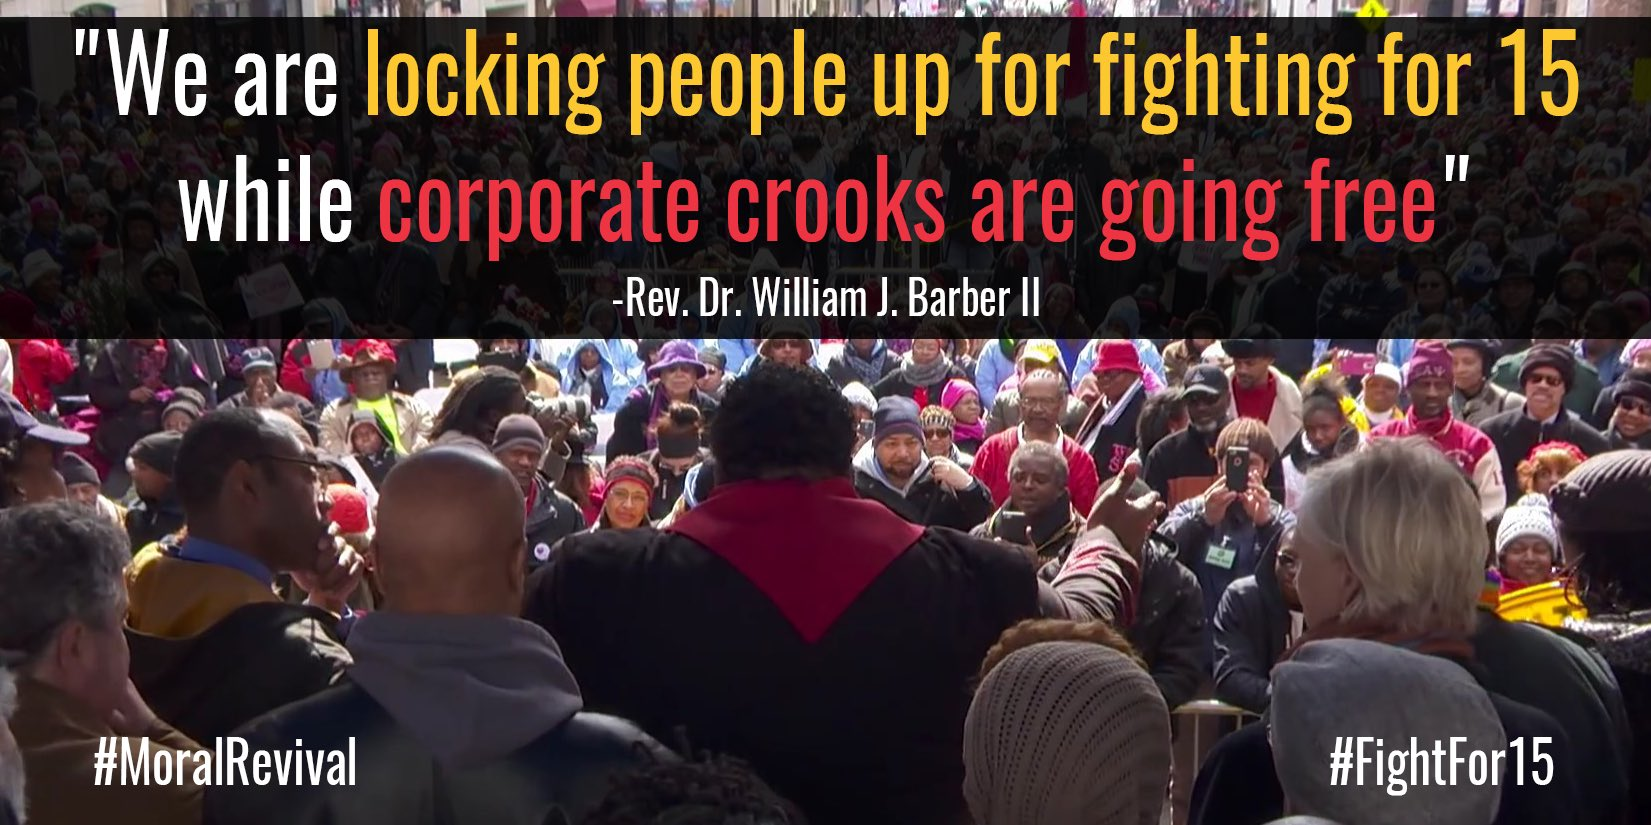 .@RevDrBarber will be at the #FightFor15 National Convention this week https://t.co/BWbtosAcmx https://t.co/QdCudvbLXu